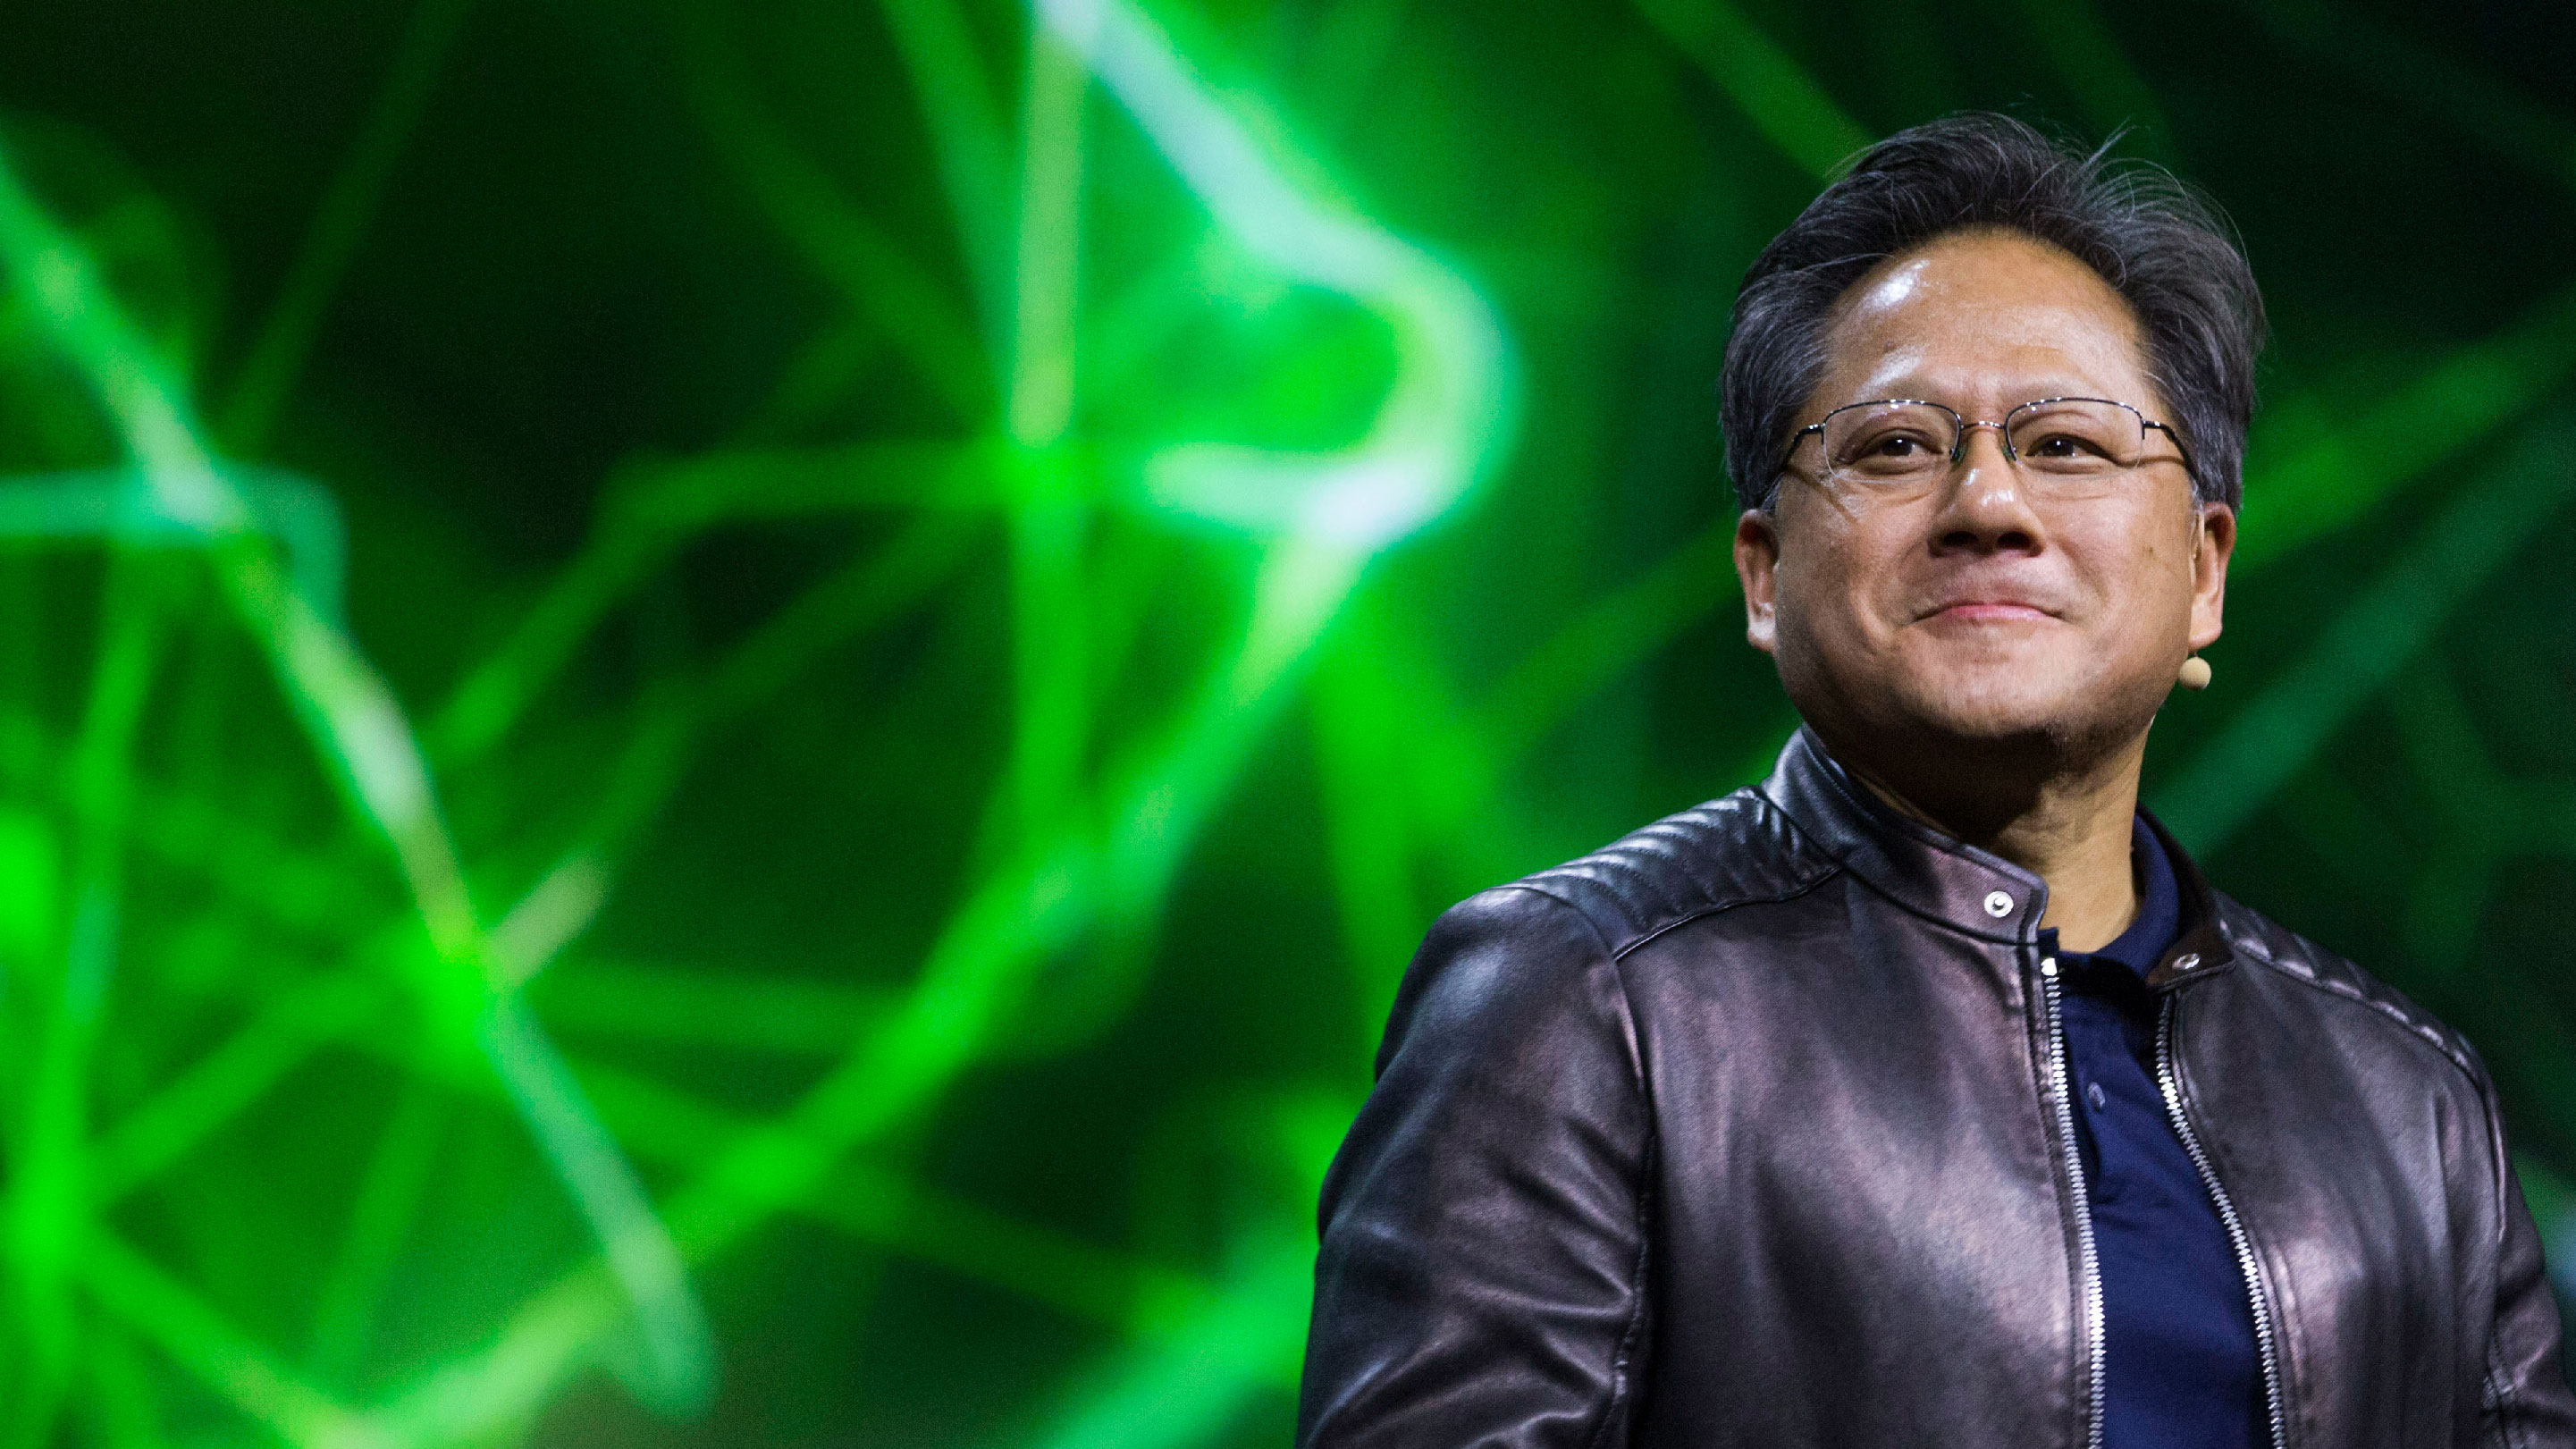 Liveblog: Nvidia is at CES 2018 with autonomous cars and gaming